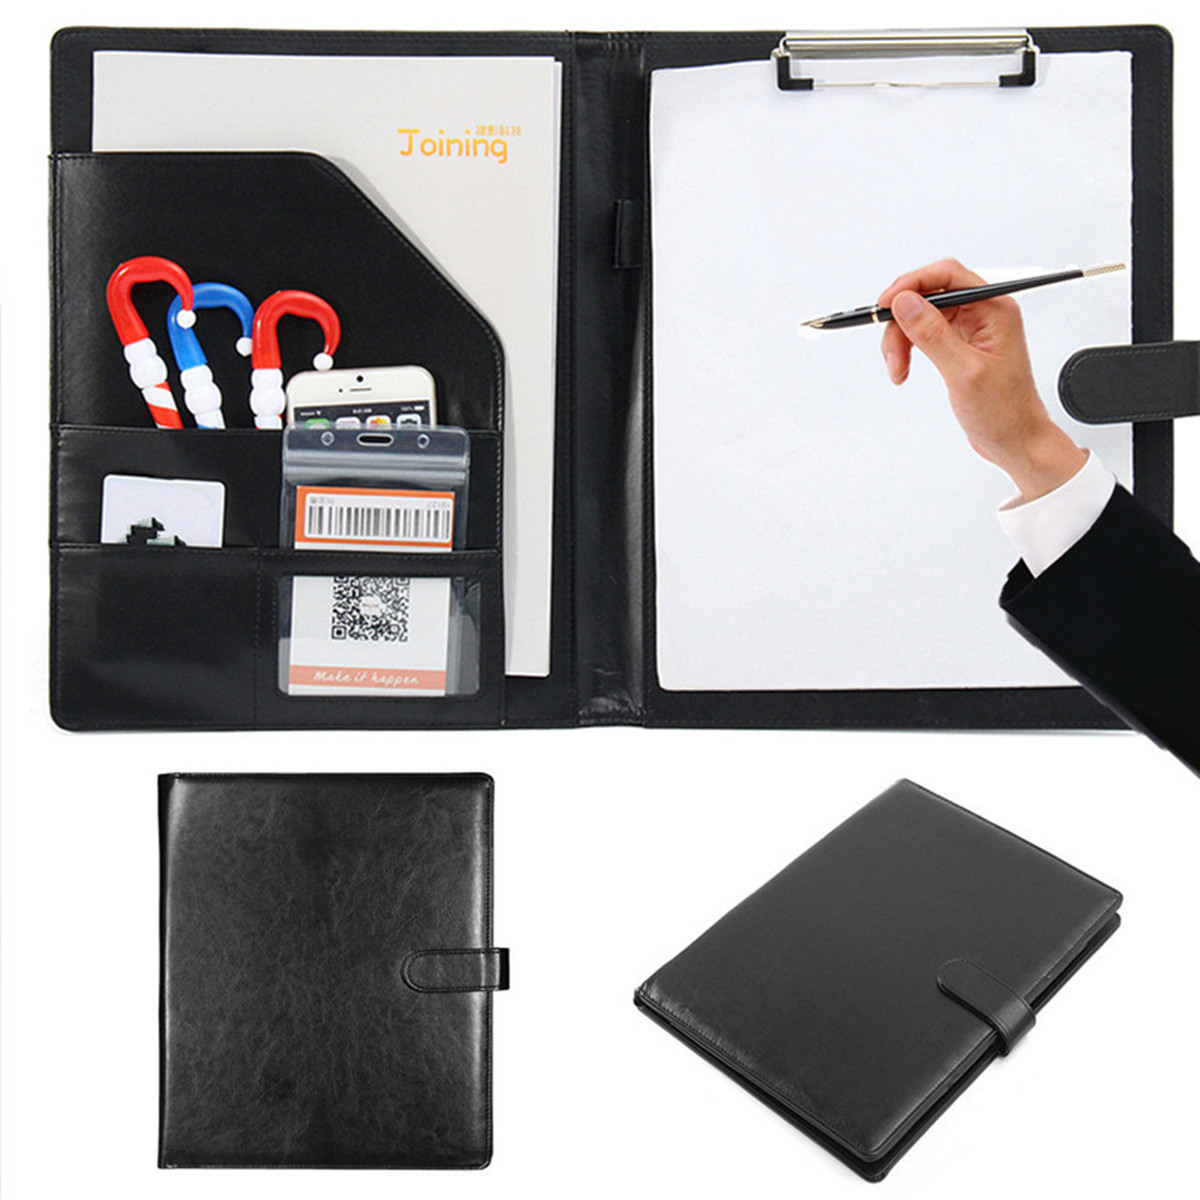 Black A4 Executive Conference Folder Portfolio PU Leather Document Organiser With Calculator